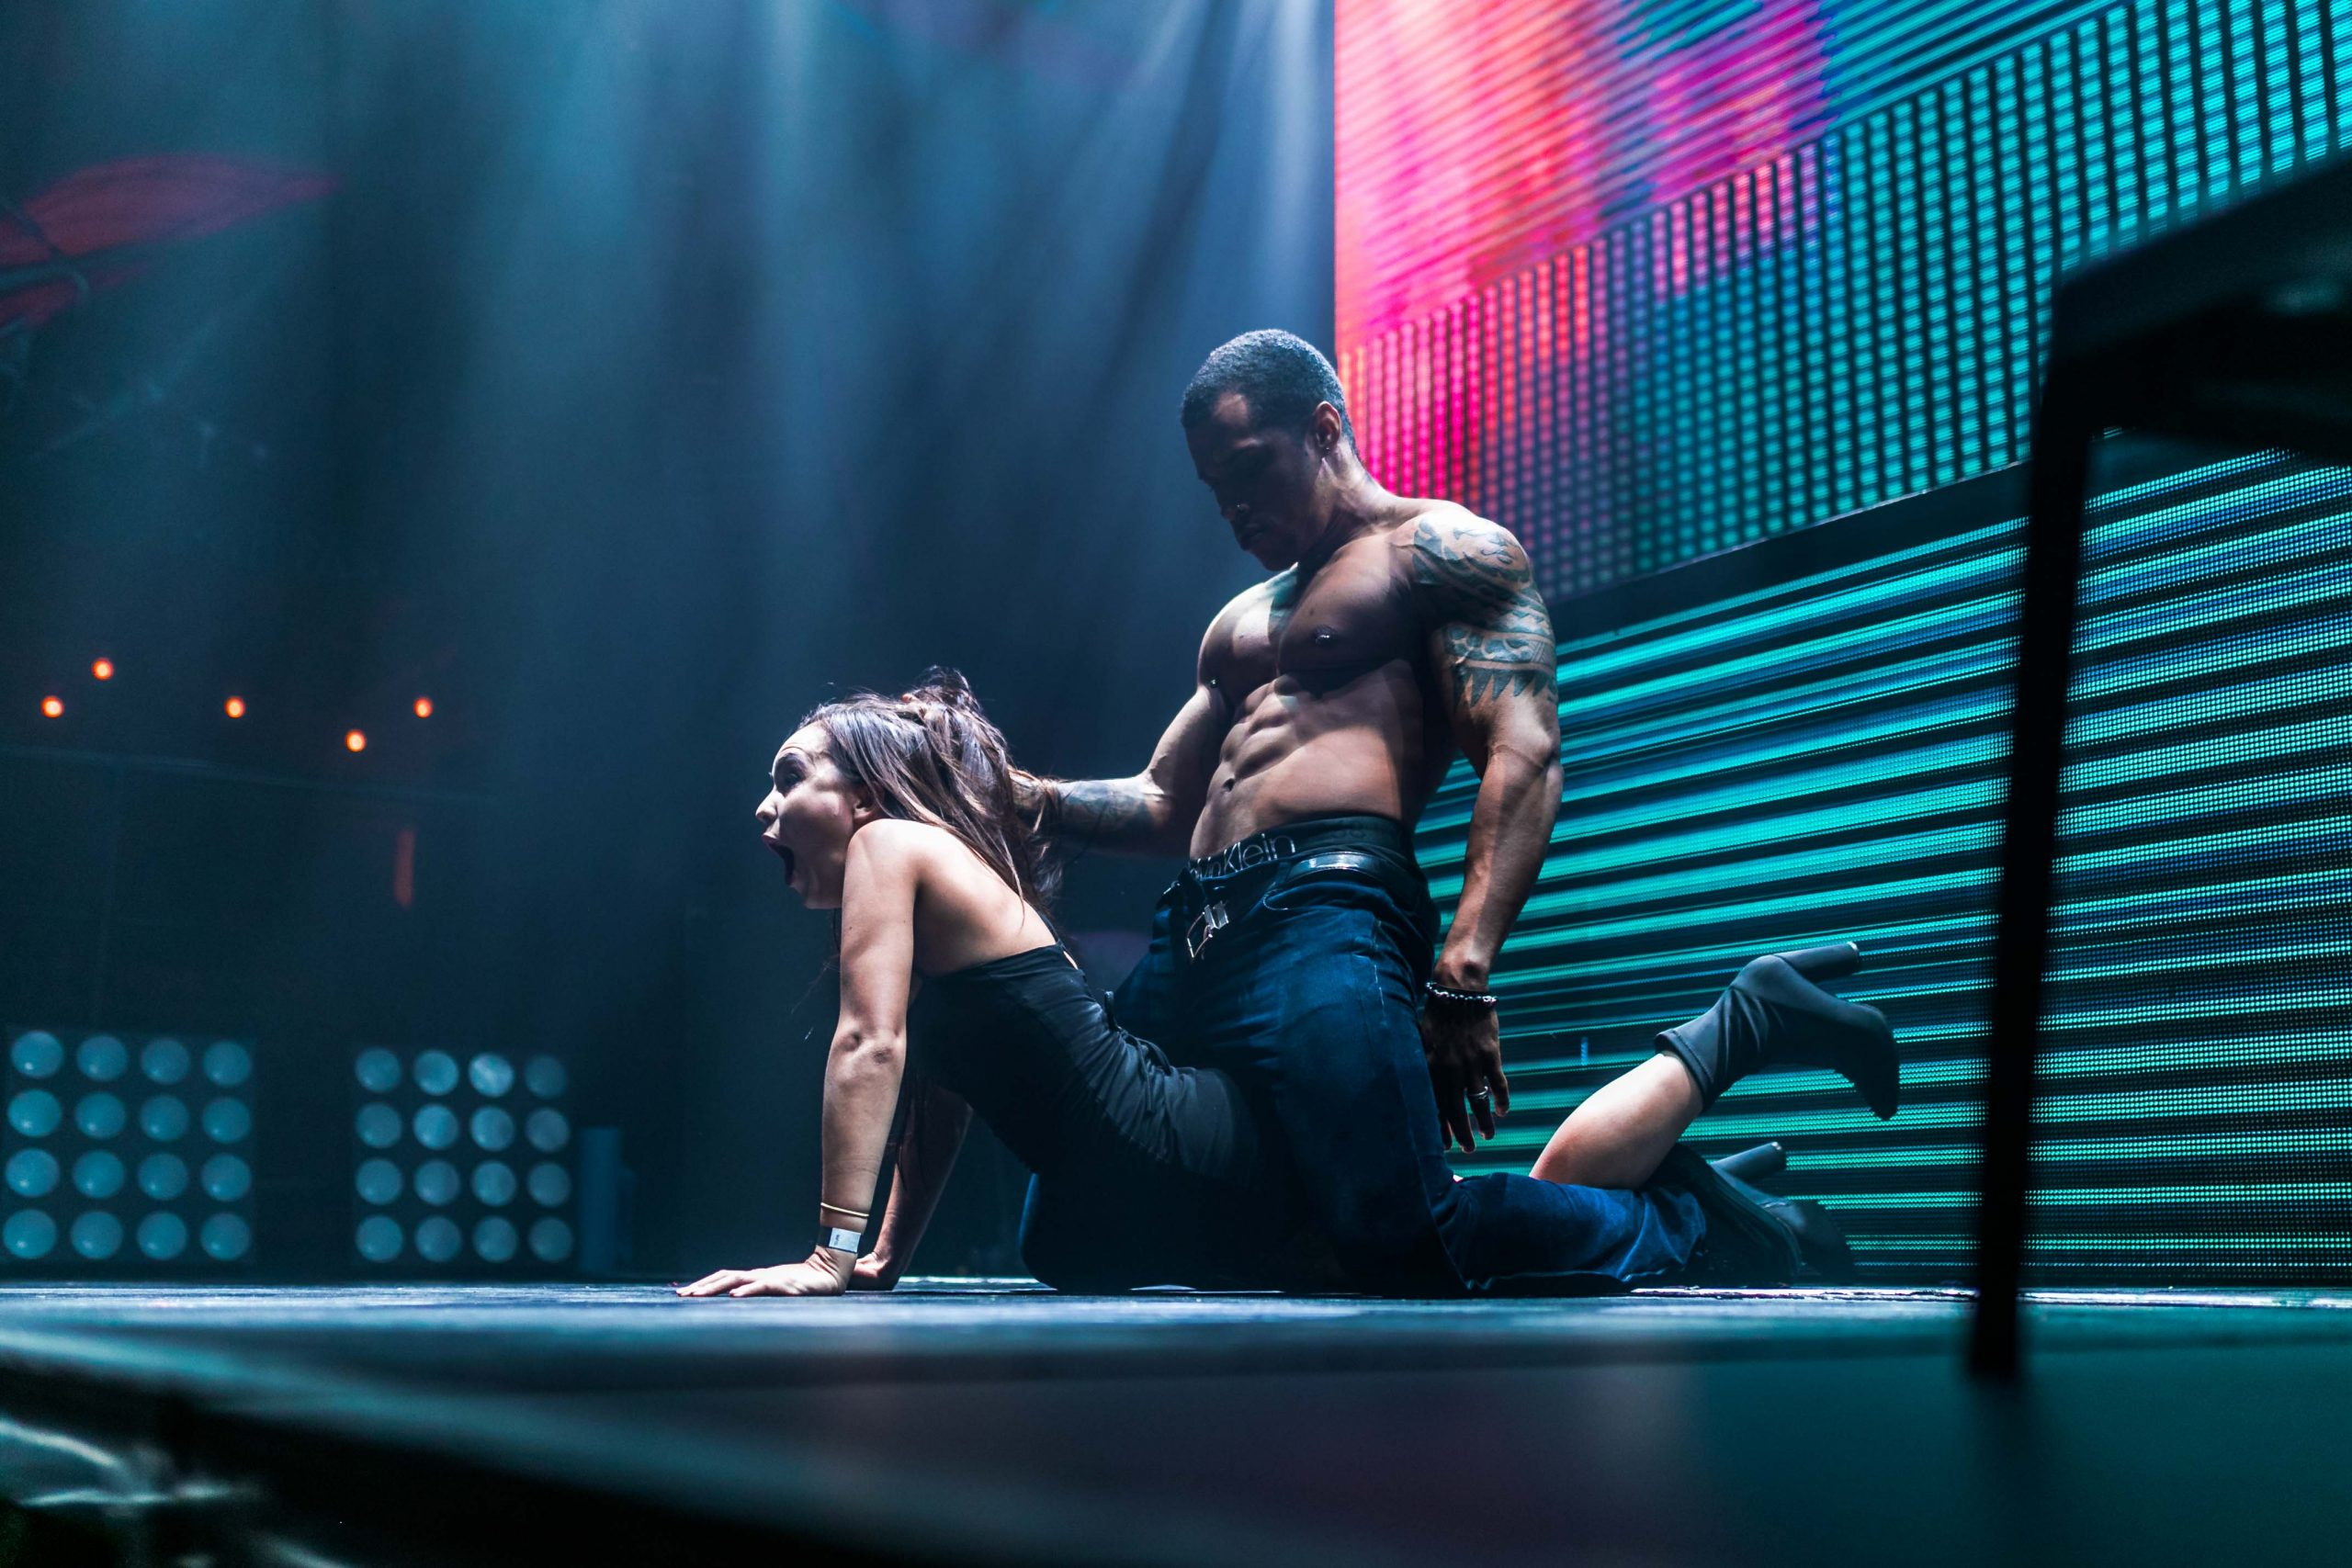 Hotels That Offer the Best Male Strippers and Exotic Dancers